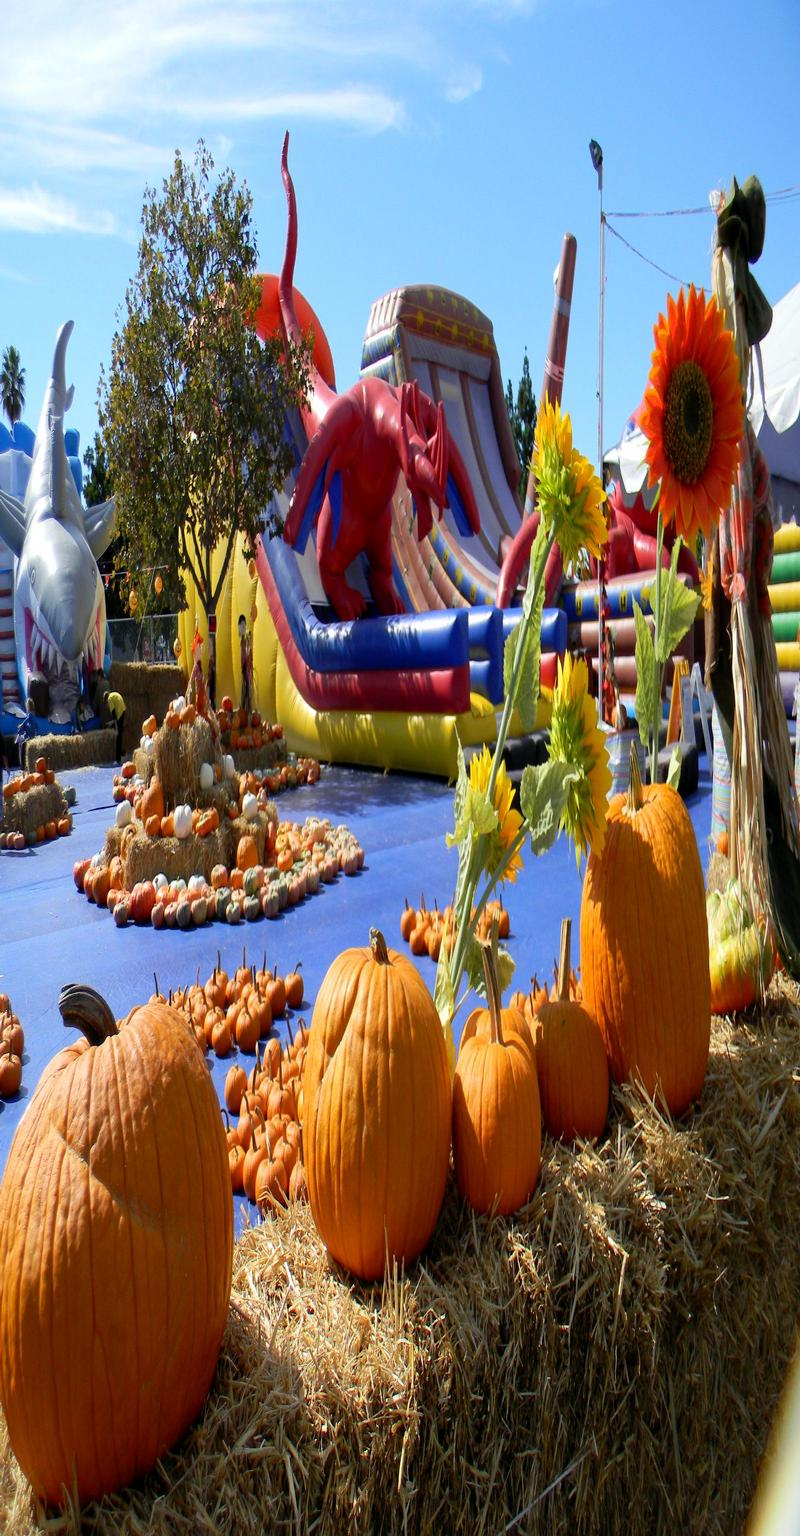 PPP Pumpkin Patch